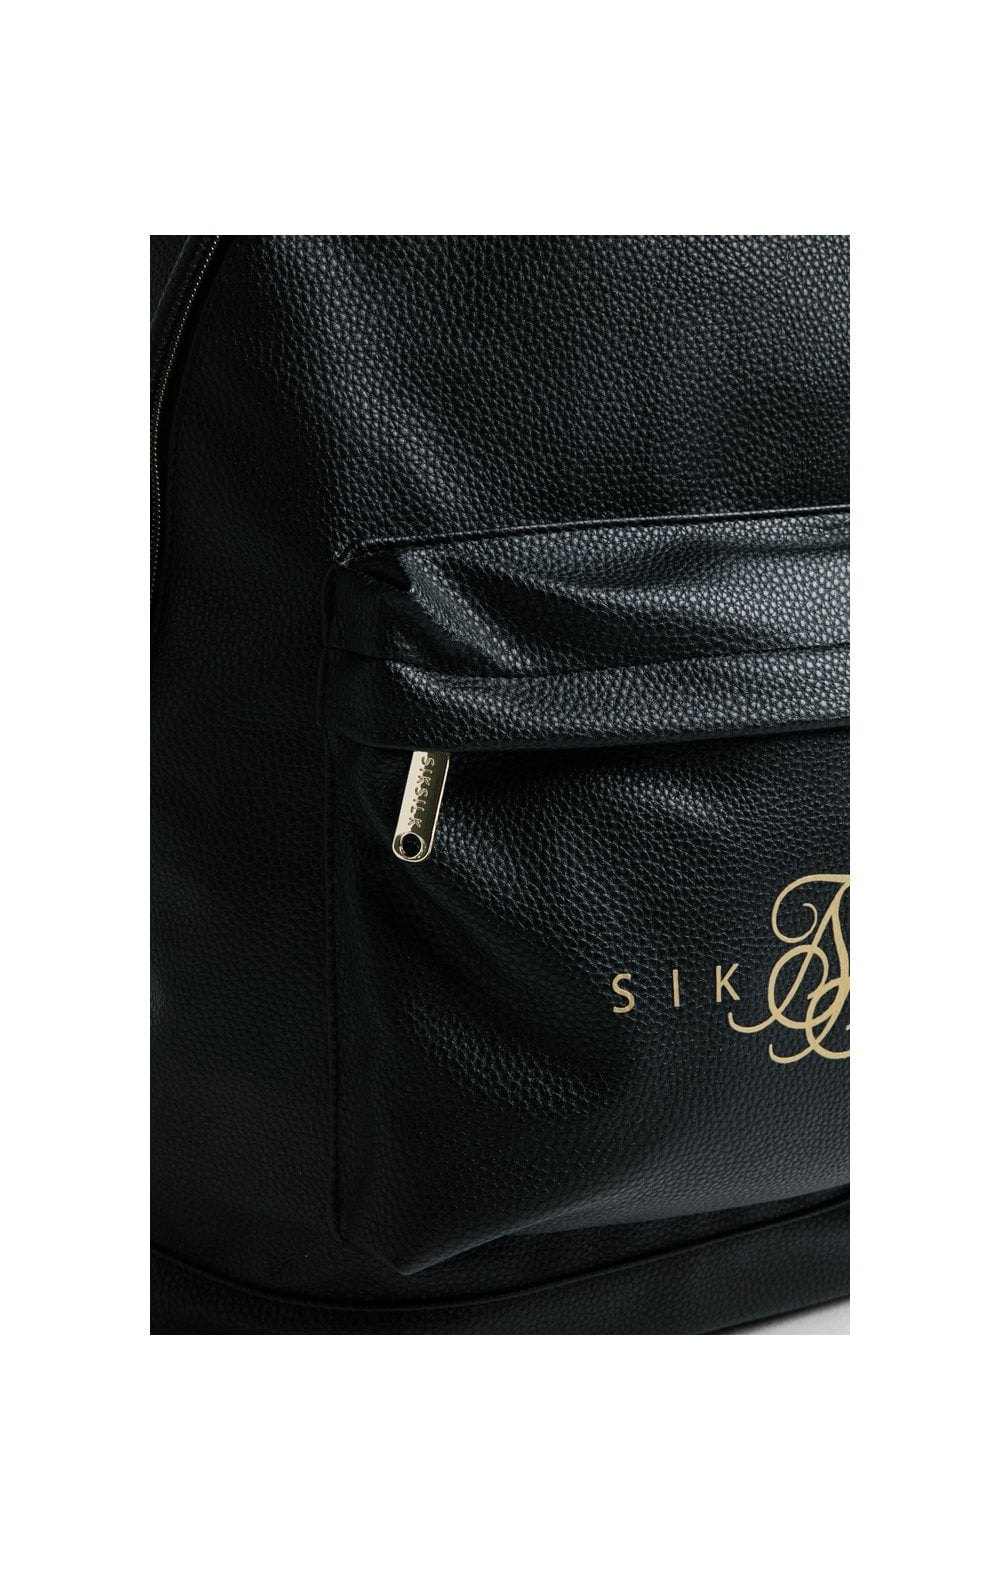 SikSilk Backpack - Black (2)